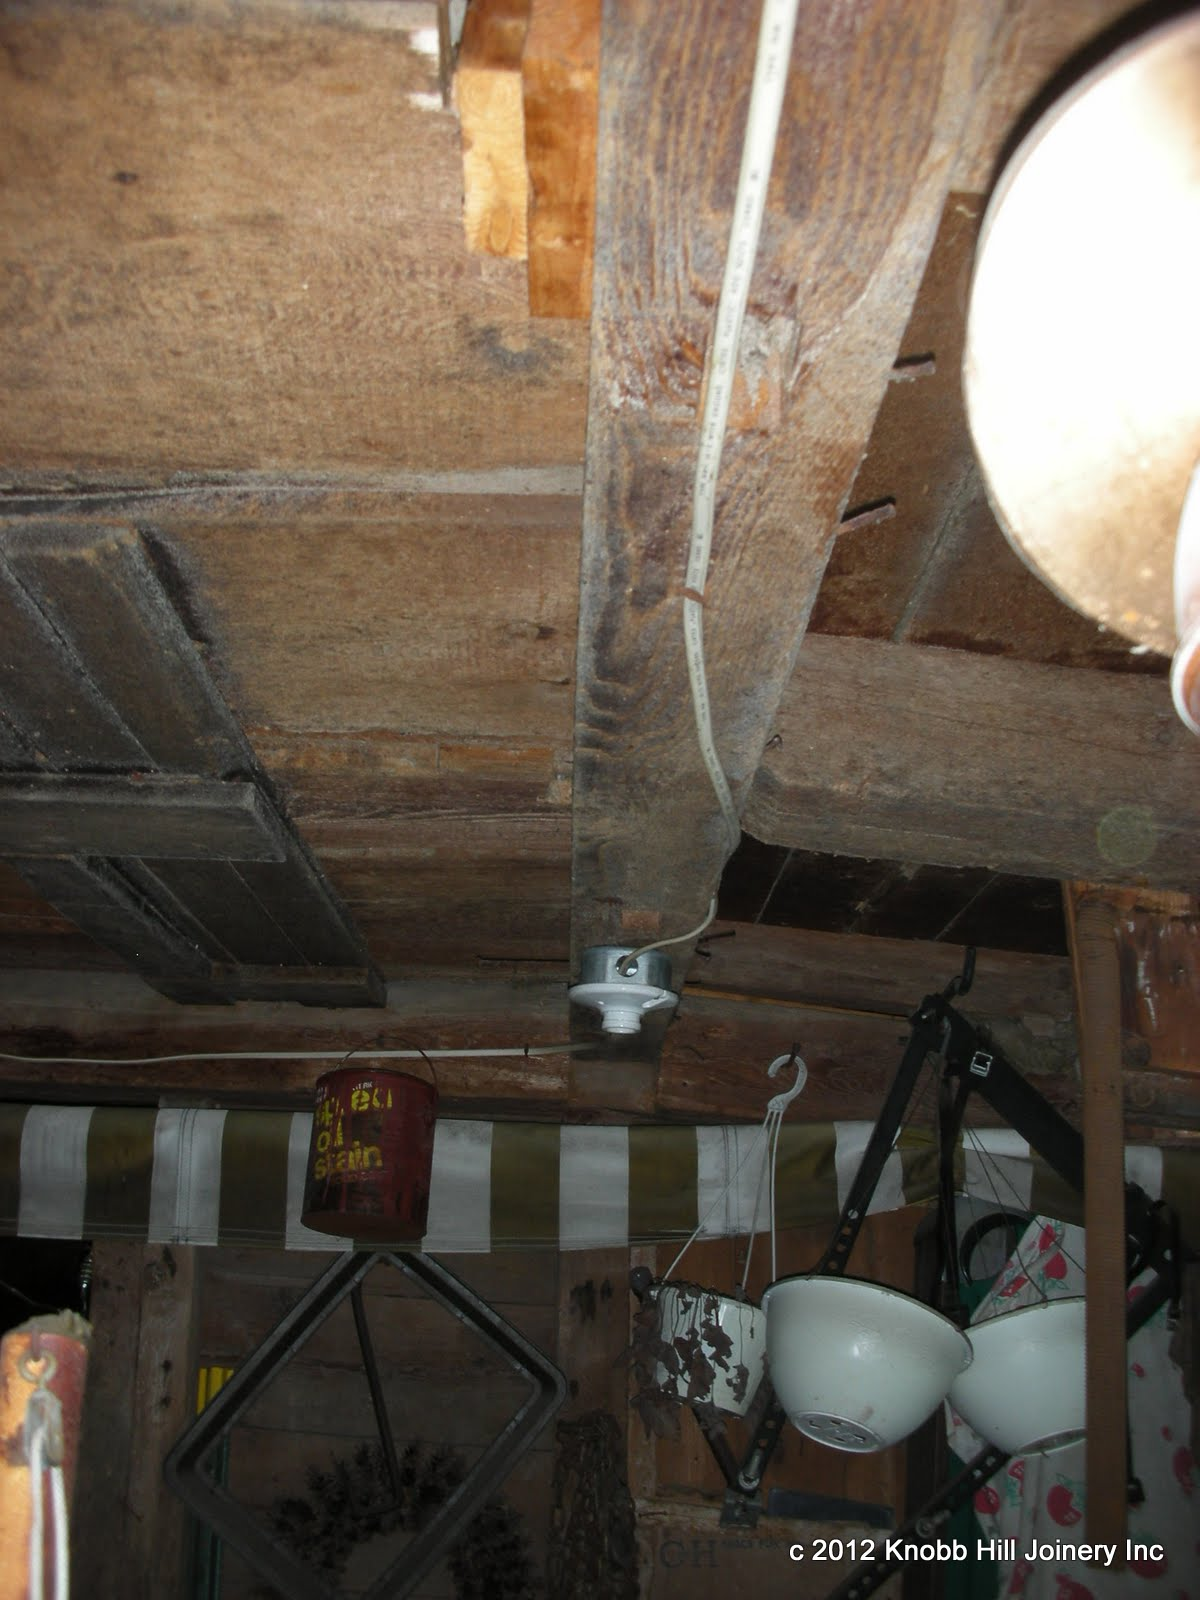 The middle tie beam of the barn had fractured mid-span.